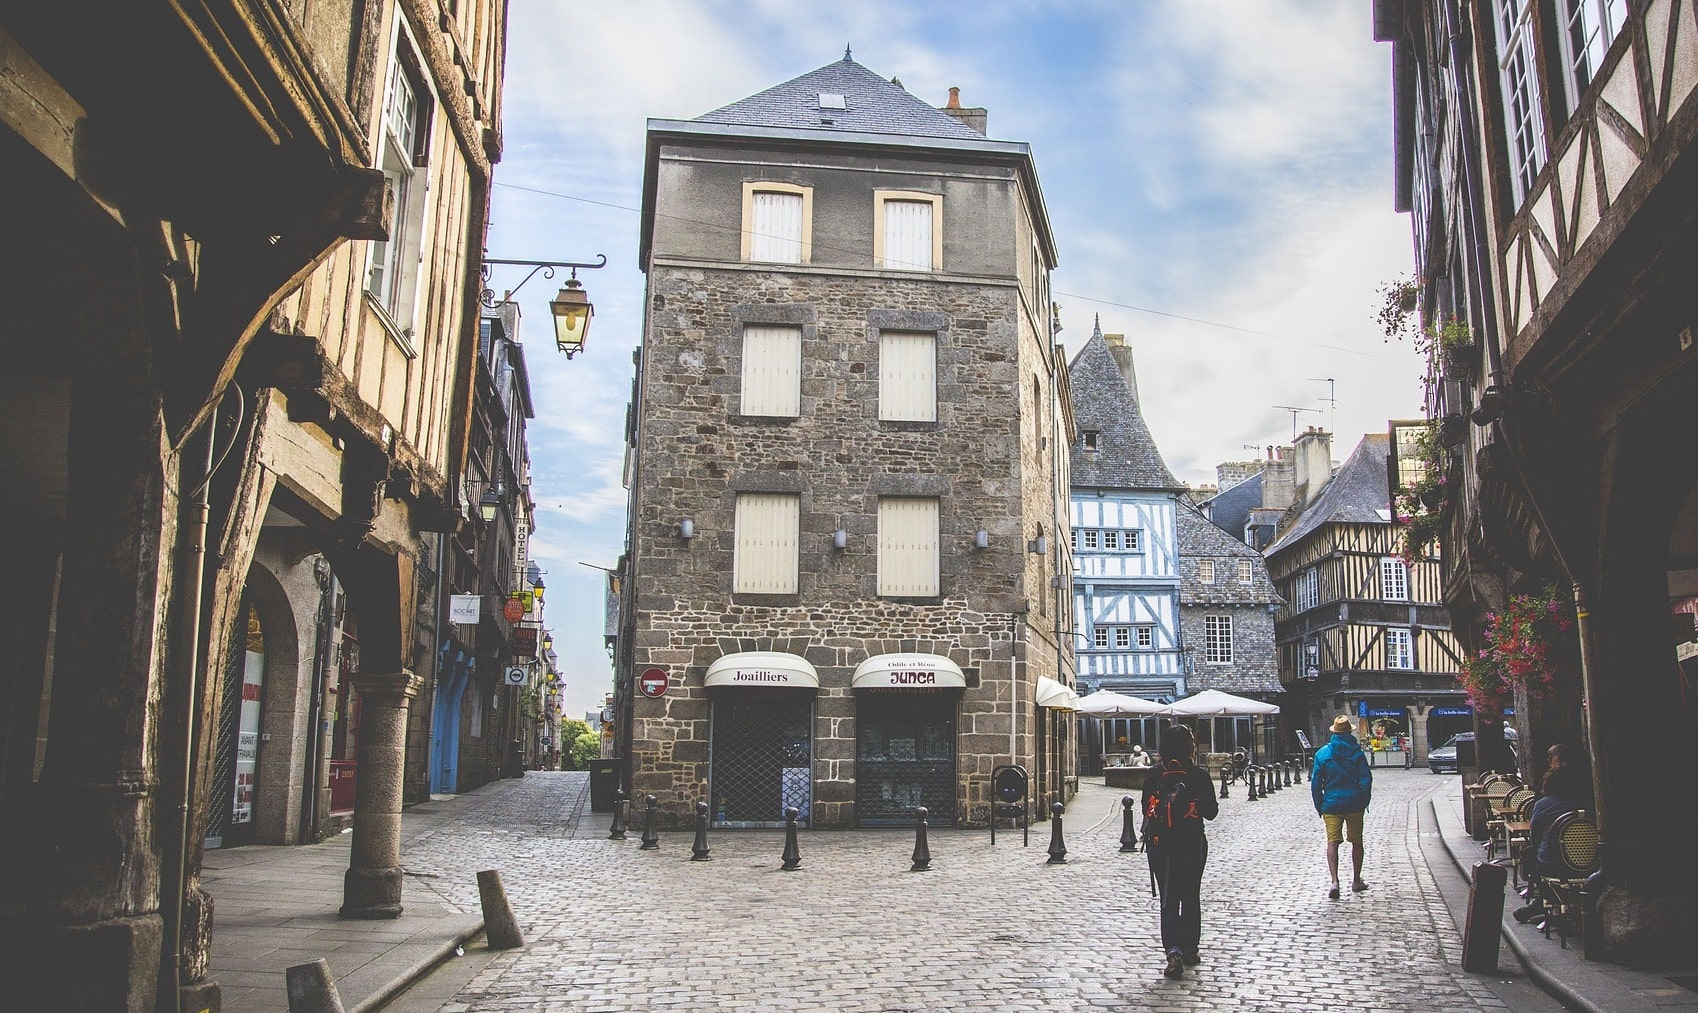 Most Instagrammable City in Brittany France